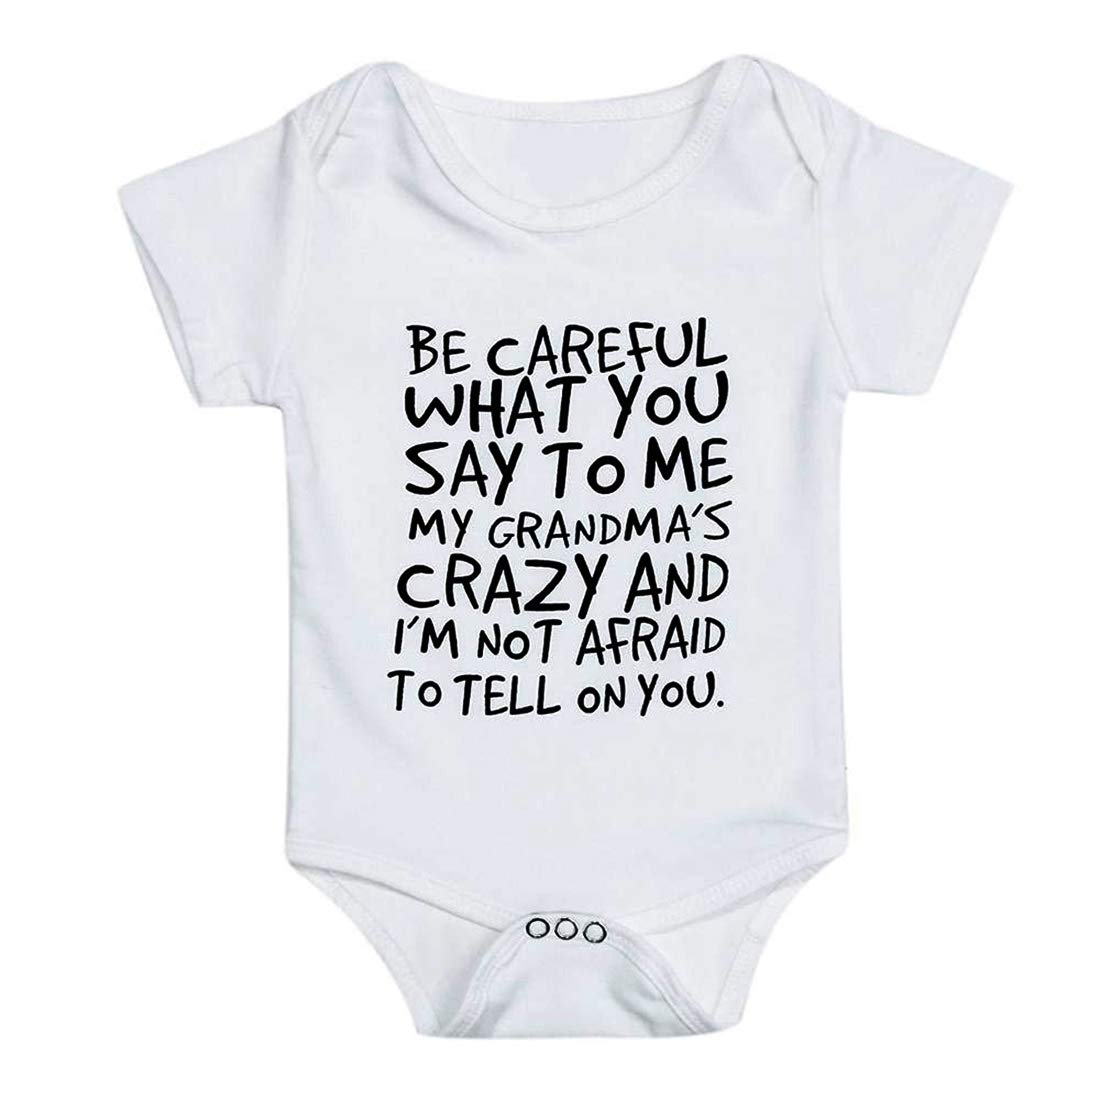 loozykit Baby Boys Girls Romper Summer Clothes Kids Playwear Letter Print Jumpsuit Infant Onesies Outfits Gift